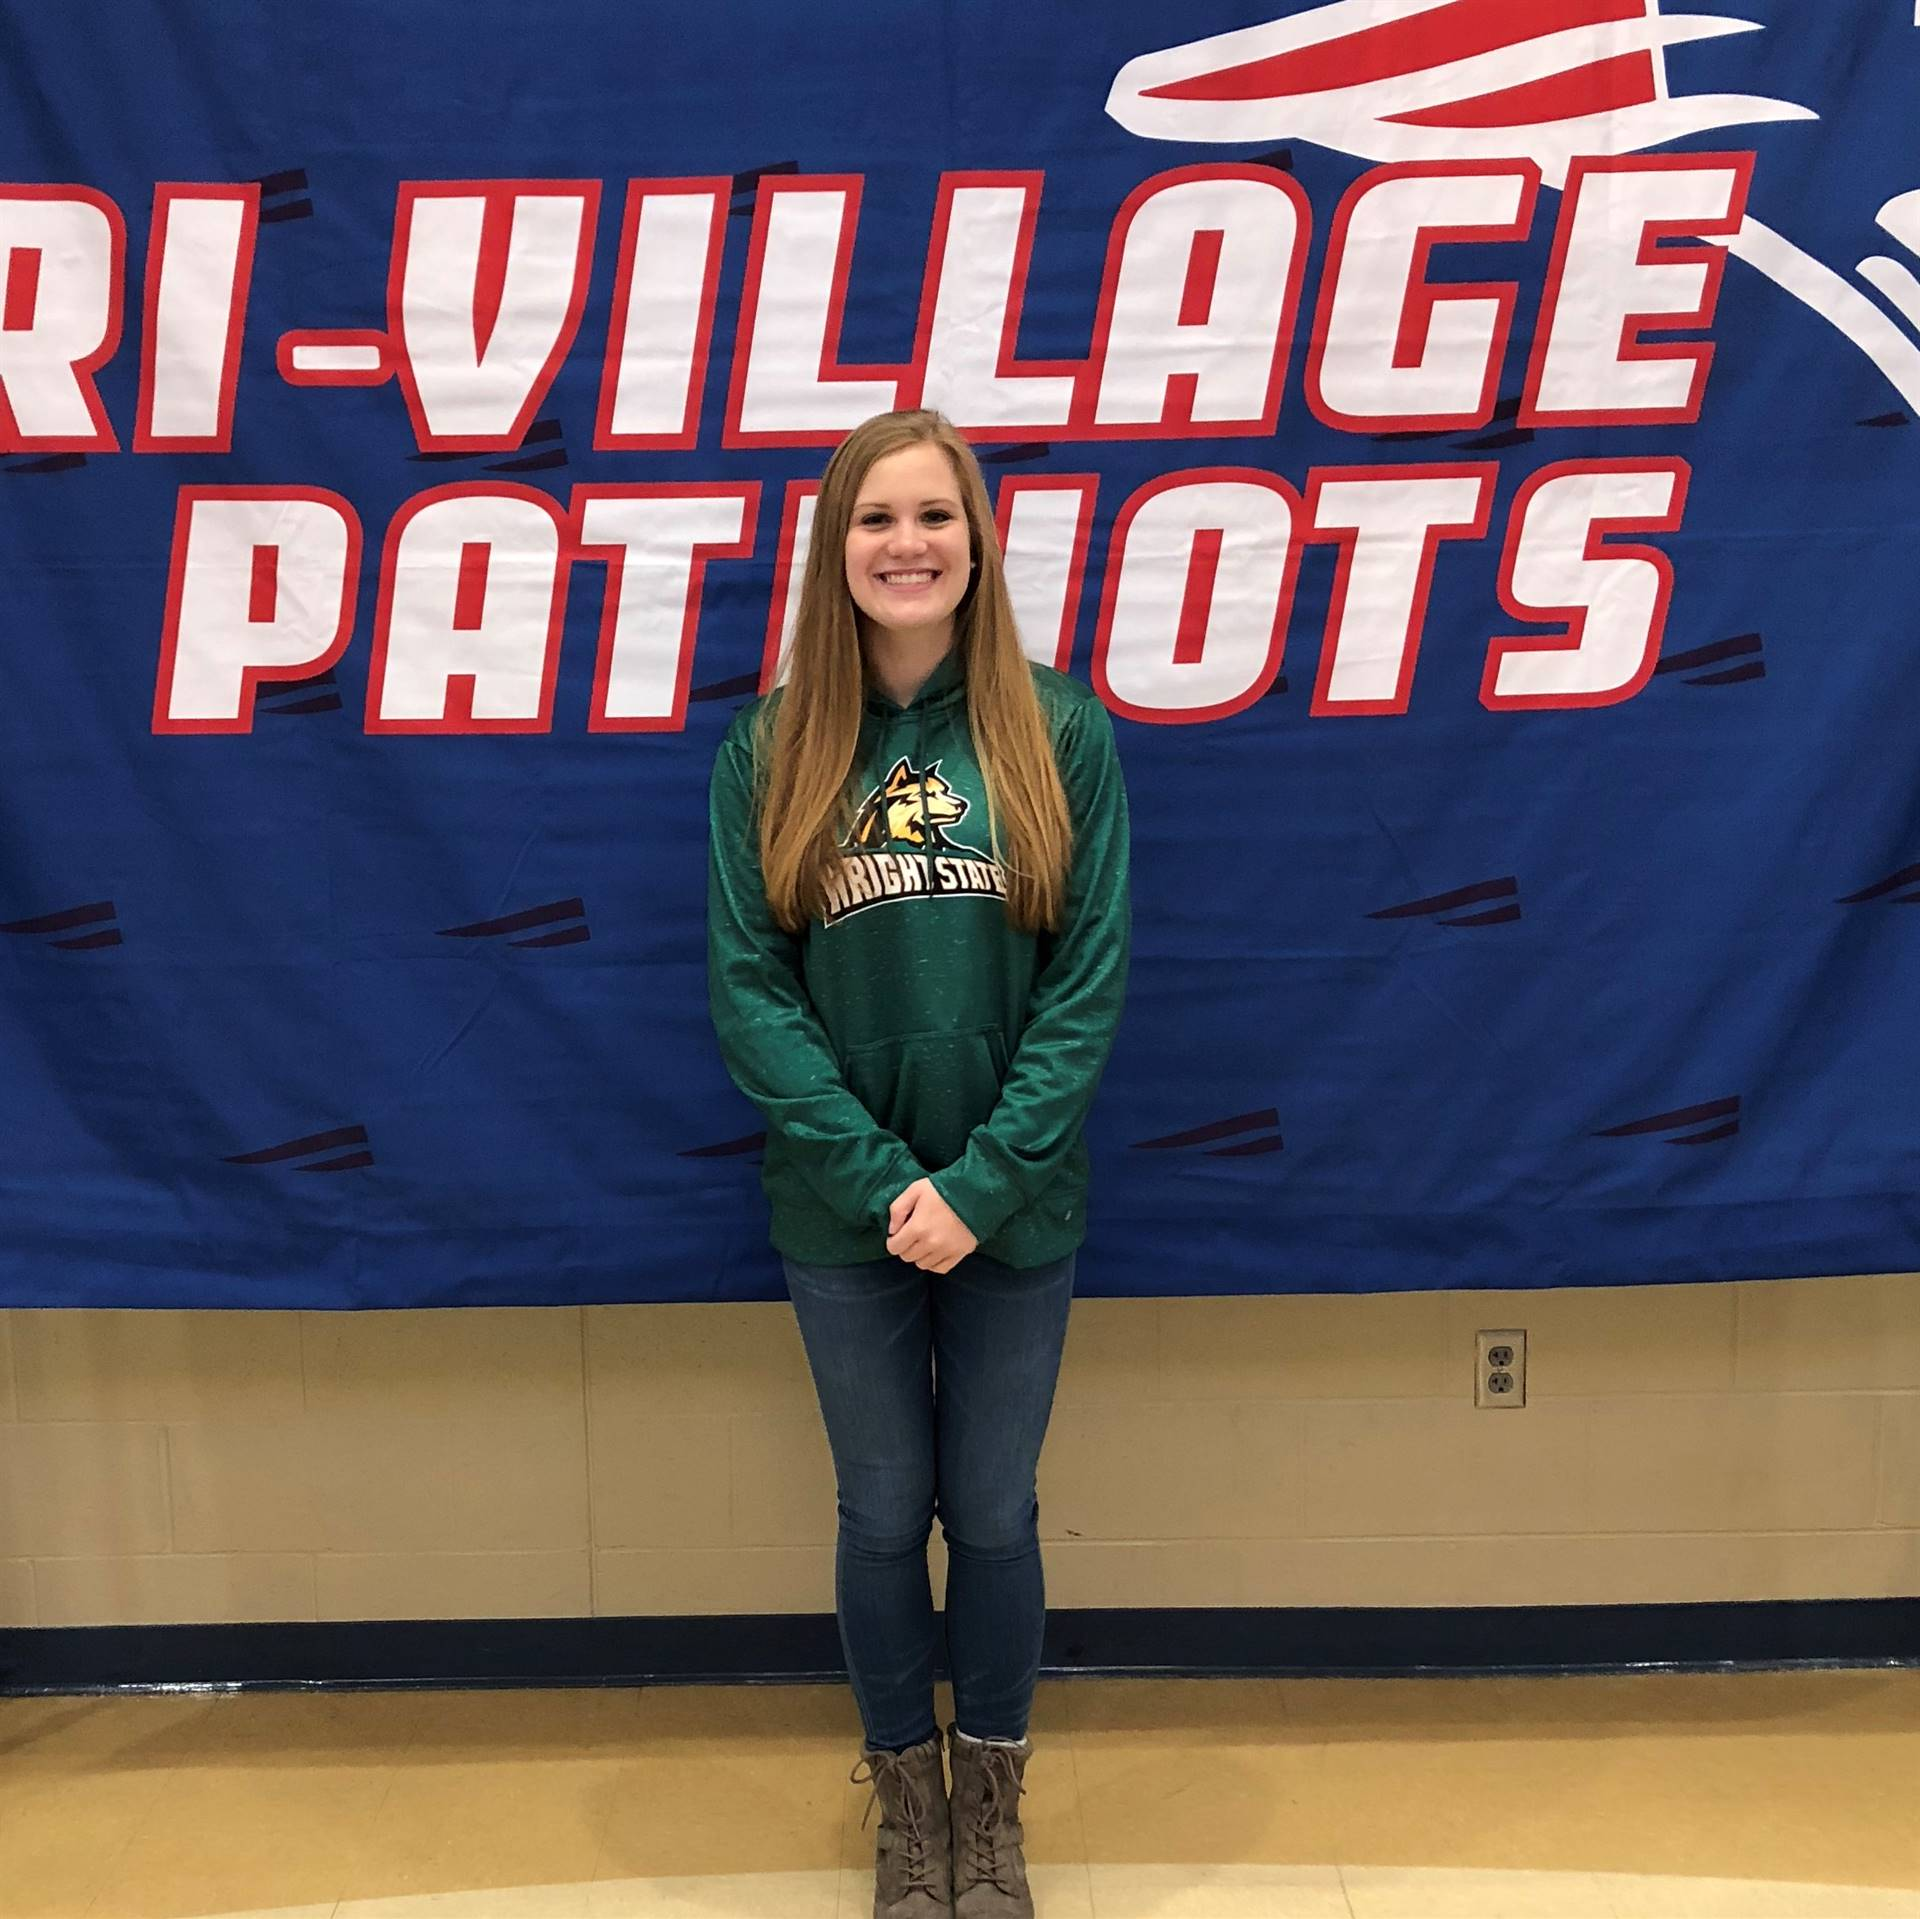 Alana Holsapple - Wright State University